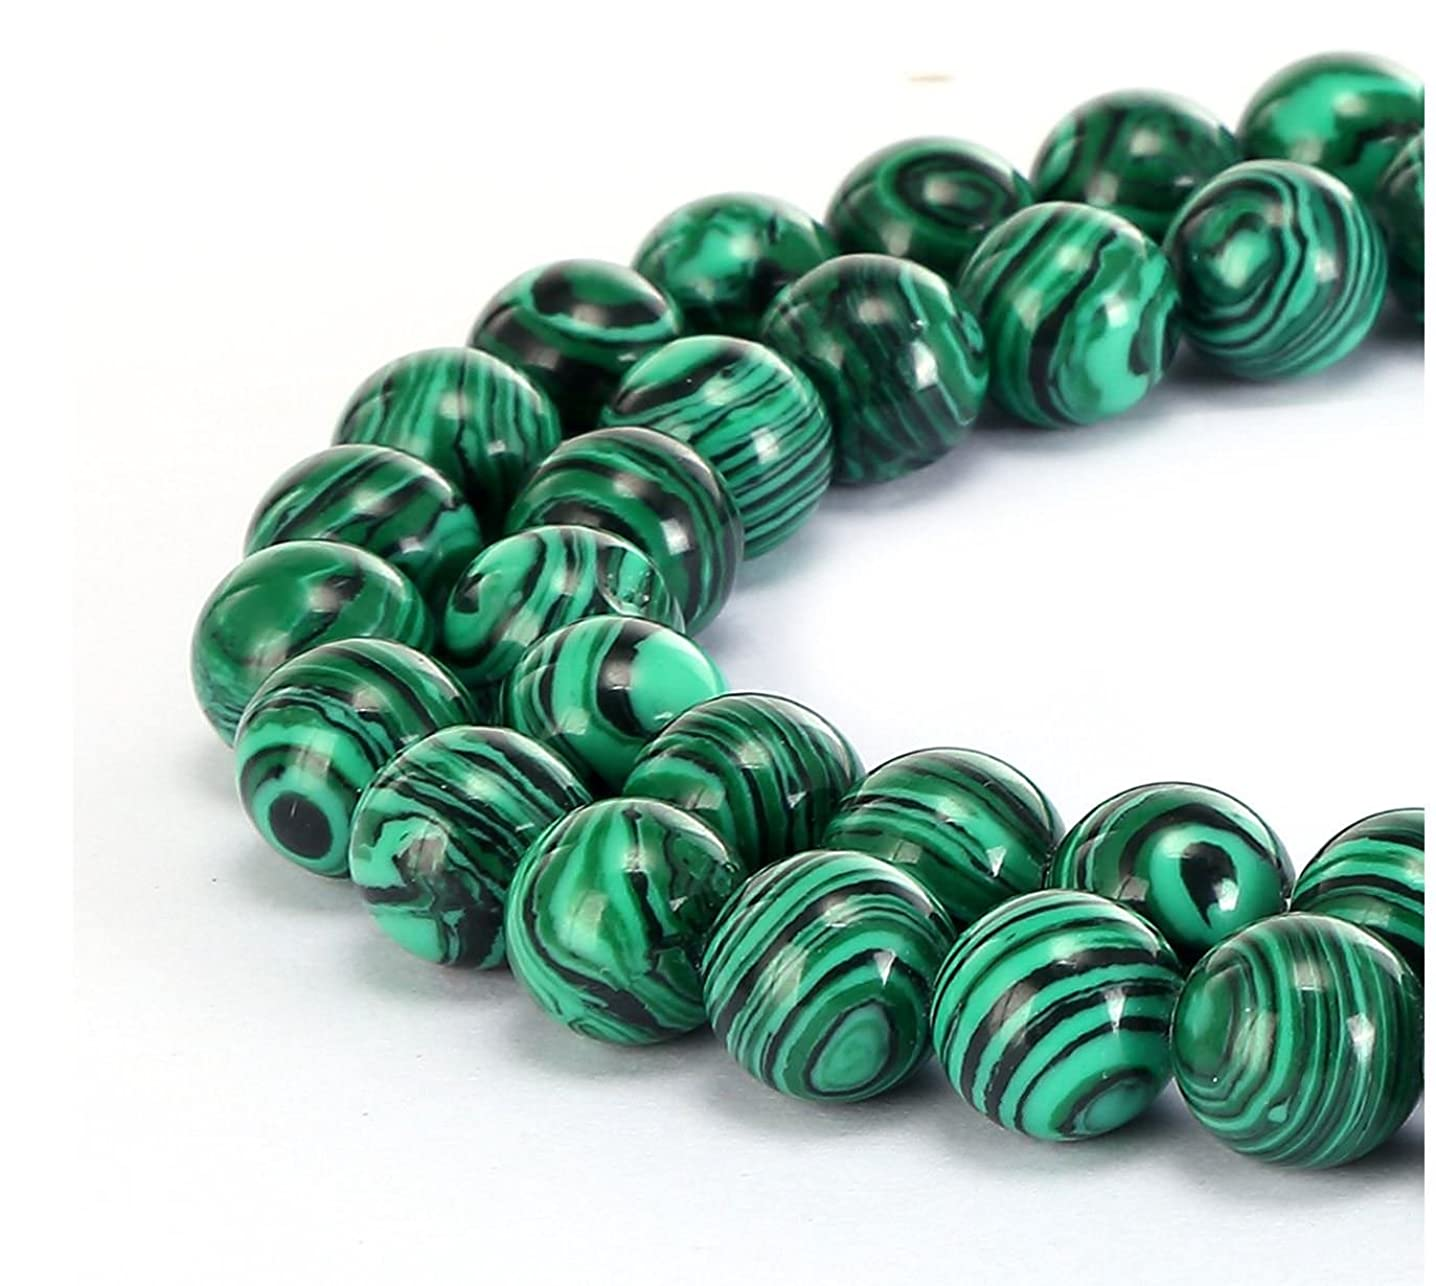 Top Quality Synthetic Green Malachite Gemstone 4mm Round Loose Gems Stone Beads 15 Inch for Jewelry Craft Making GF25-4